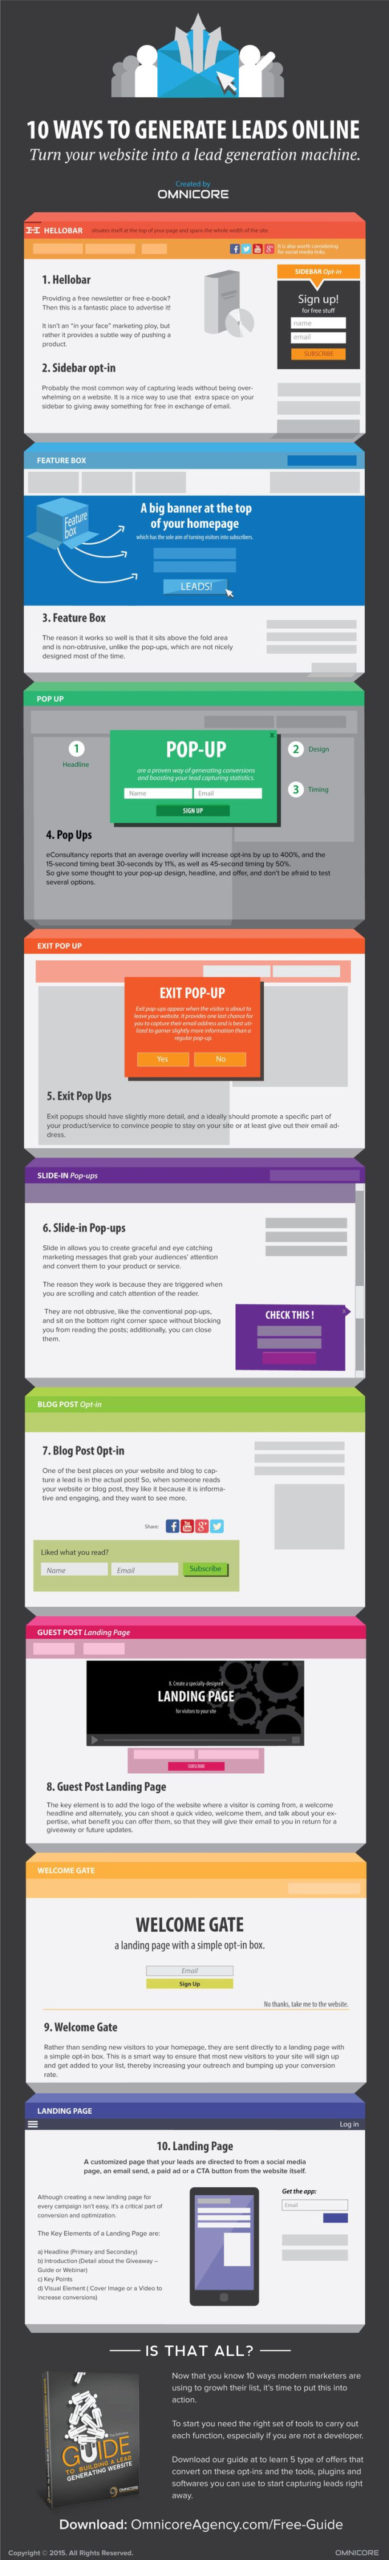 10-clever-ways-to-turn-your-website-into-a-lead-generating-machine1